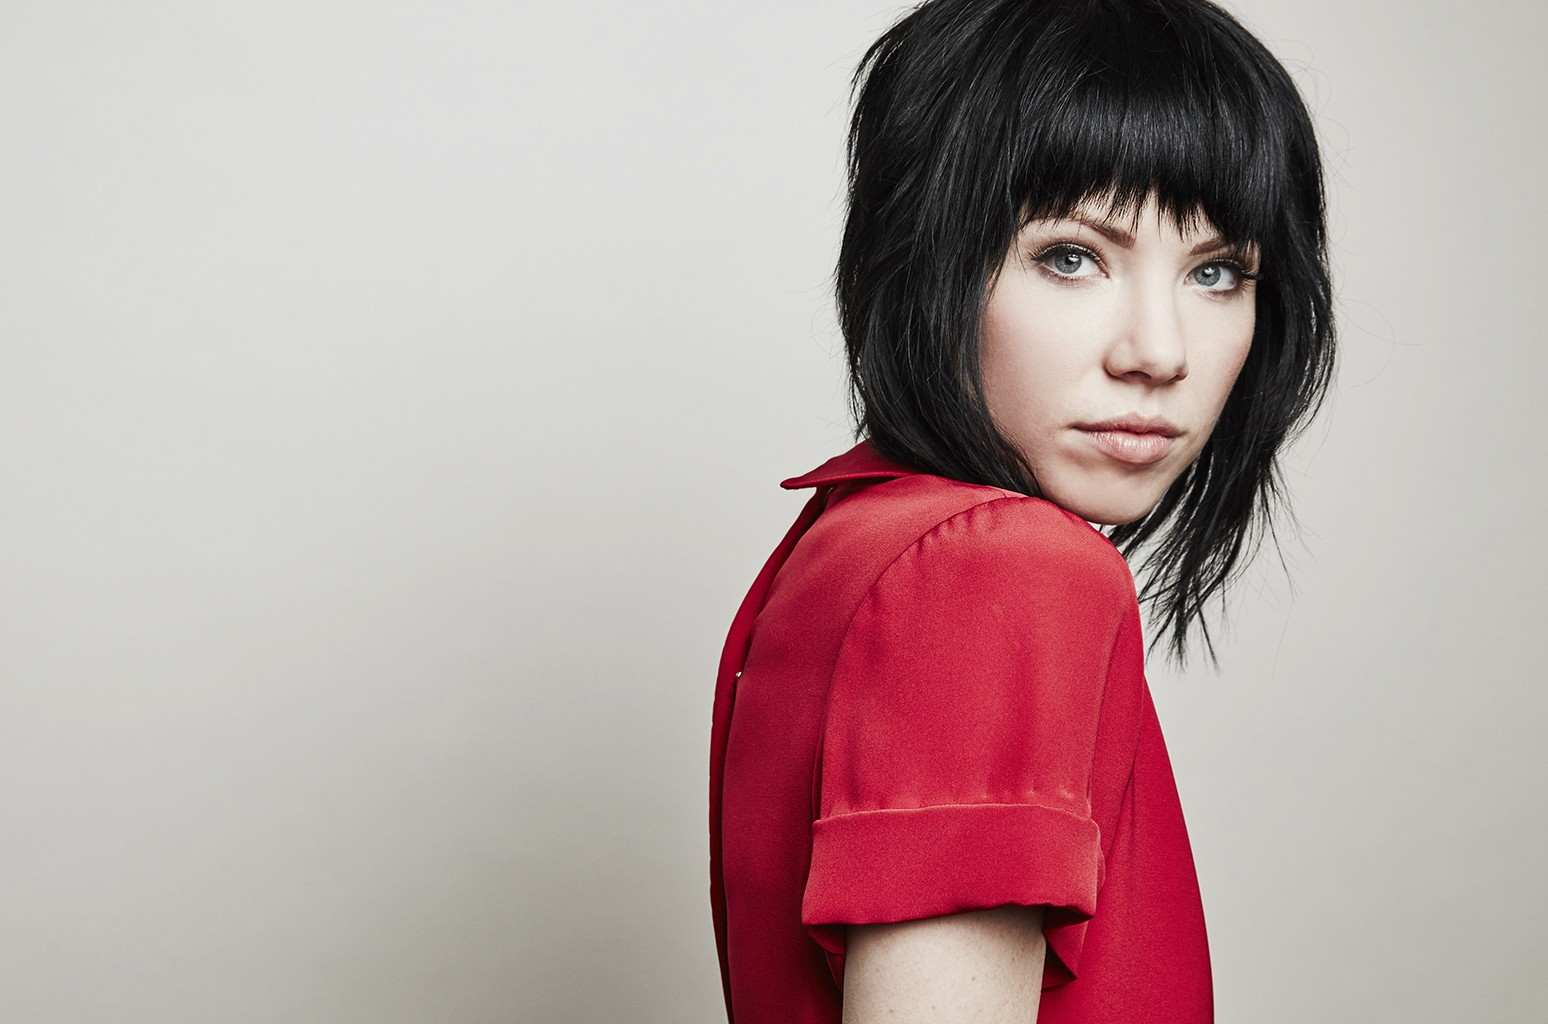 Carly Rae Jepsen photographed in the Getty Images Portrait Studio at the 2016 Winter Television Critics Association press tour at the Langham Hotel on Jan. 15, 2016 in Pasadena, Calif.